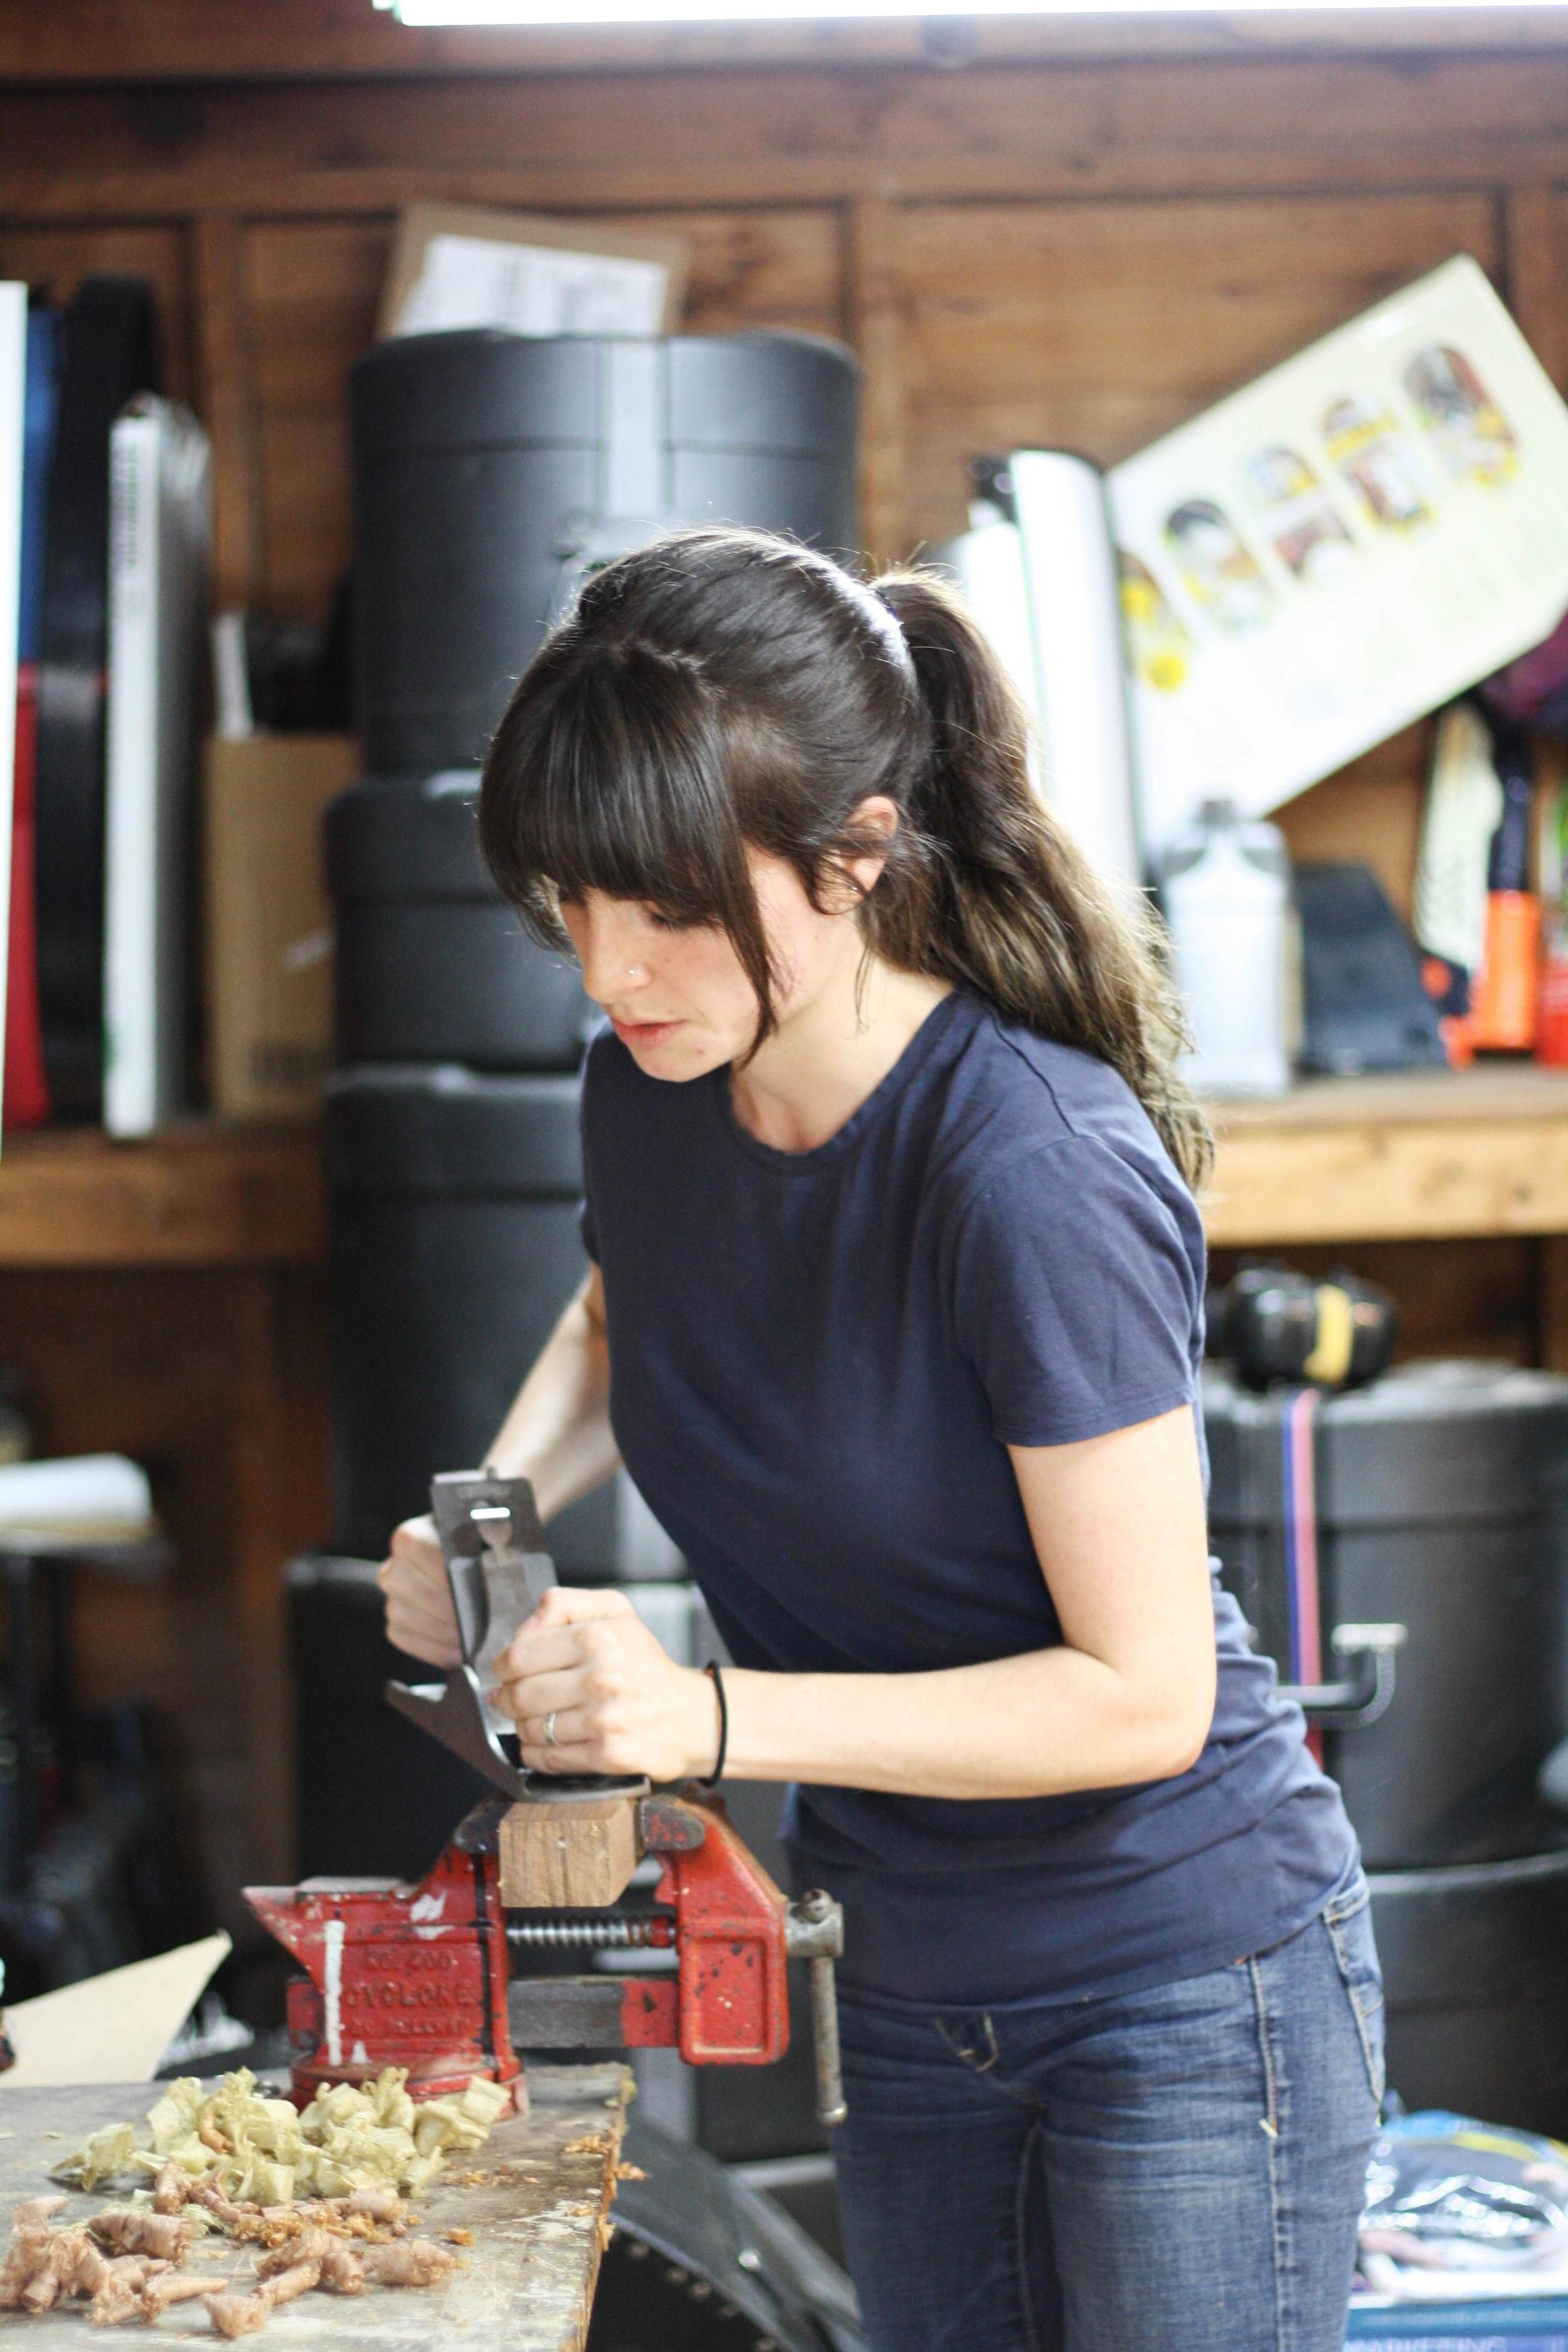 We spent a little bit of time poking around Mandy Hampton's workshop while she showed off her wood-working skills.